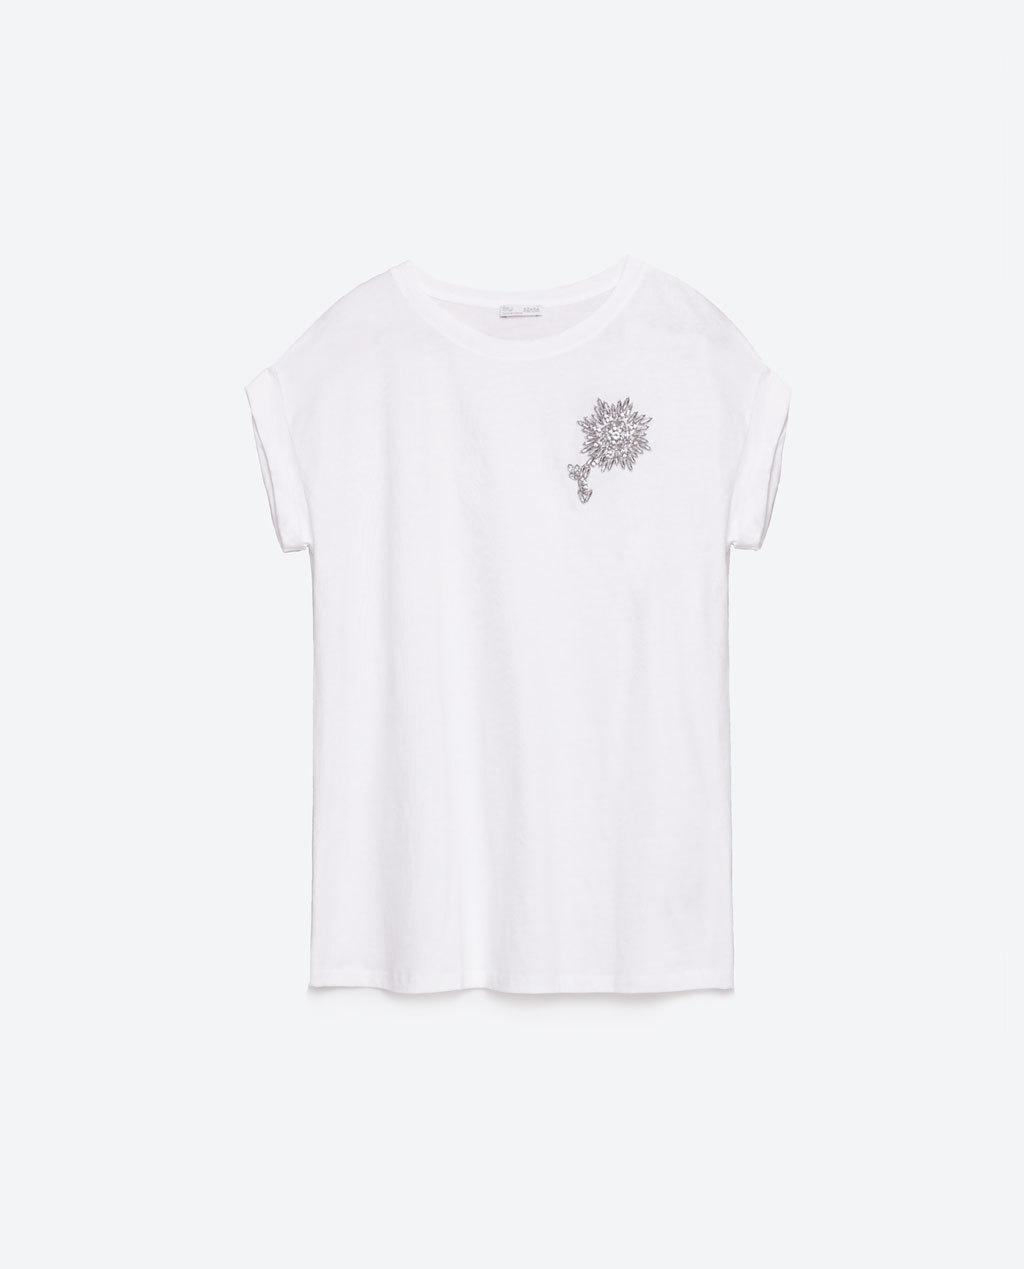 Brooch Clasp T Shirt - pattern: plain; style: t-shirt; predominant colour: white; secondary colour: light grey; occasions: casual; length: standard; fibres: cotton - 100%; fit: body skimming; neckline: crew; sleeve length: short sleeve; sleeve style: standard; pattern type: fabric; pattern size: standard; texture group: jersey - stretchy/drapey; season: s/s 2016; wardrobe: basic